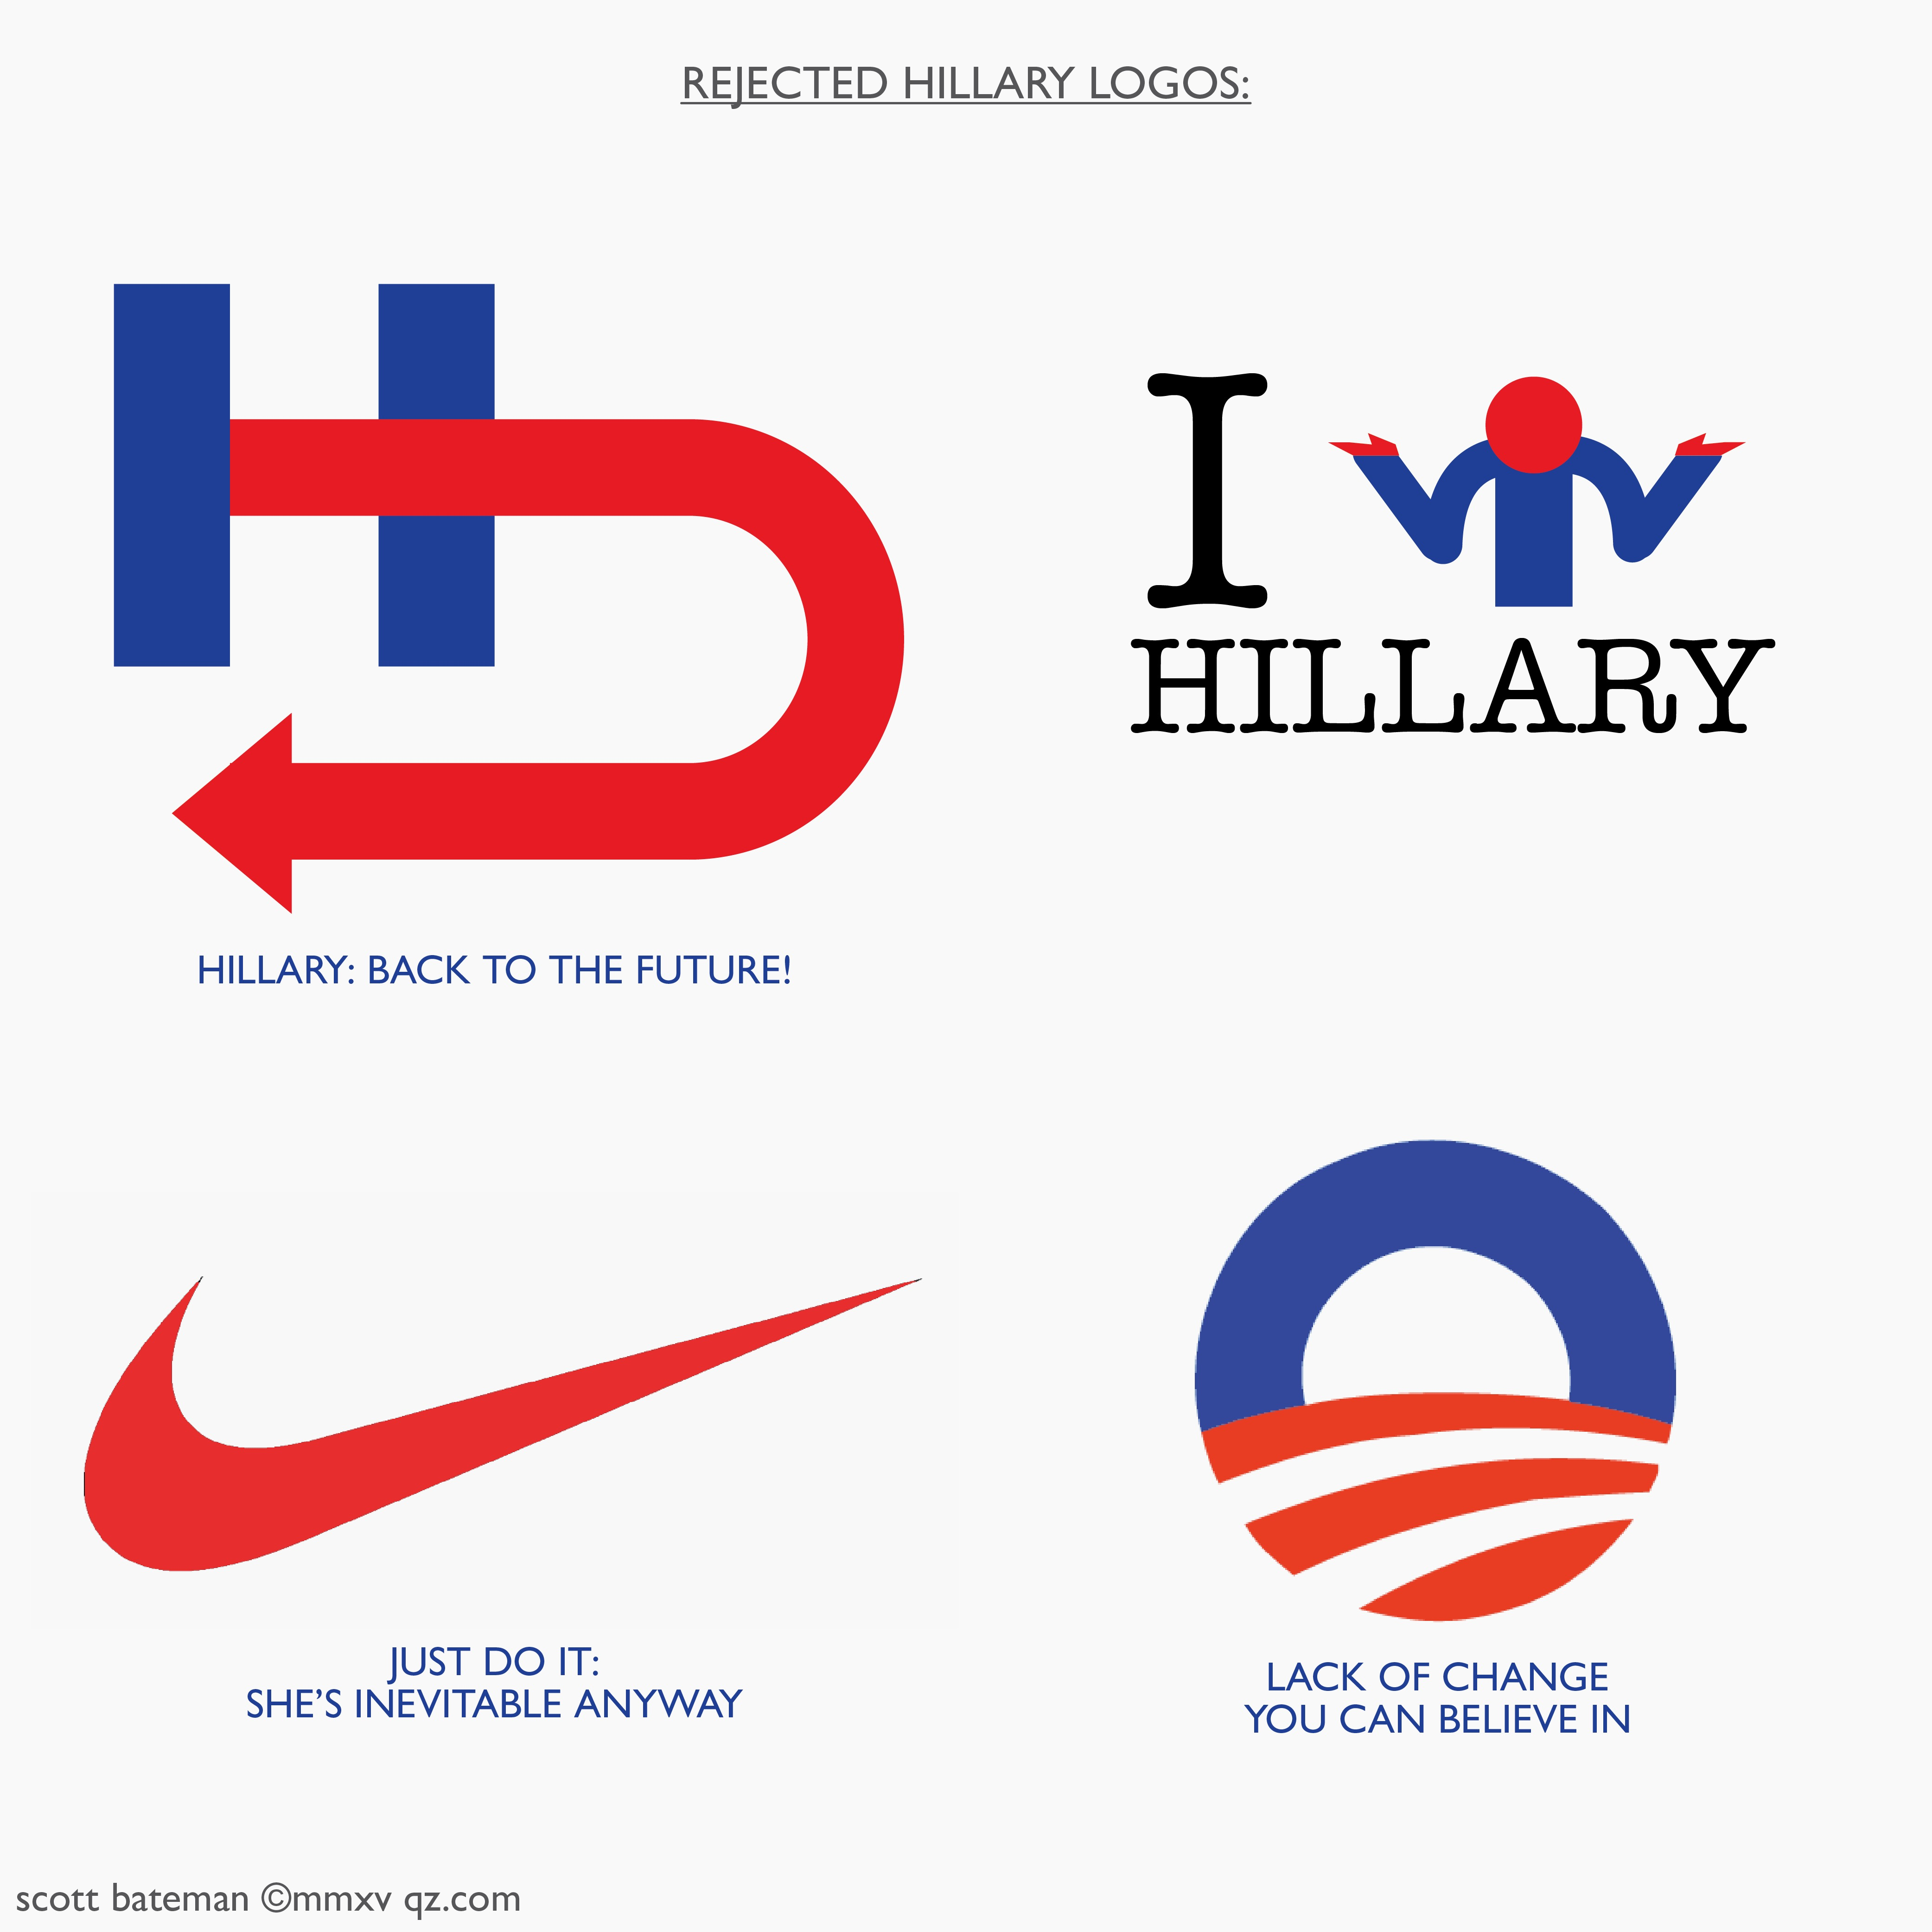 hillary-clinton-rejected-logos